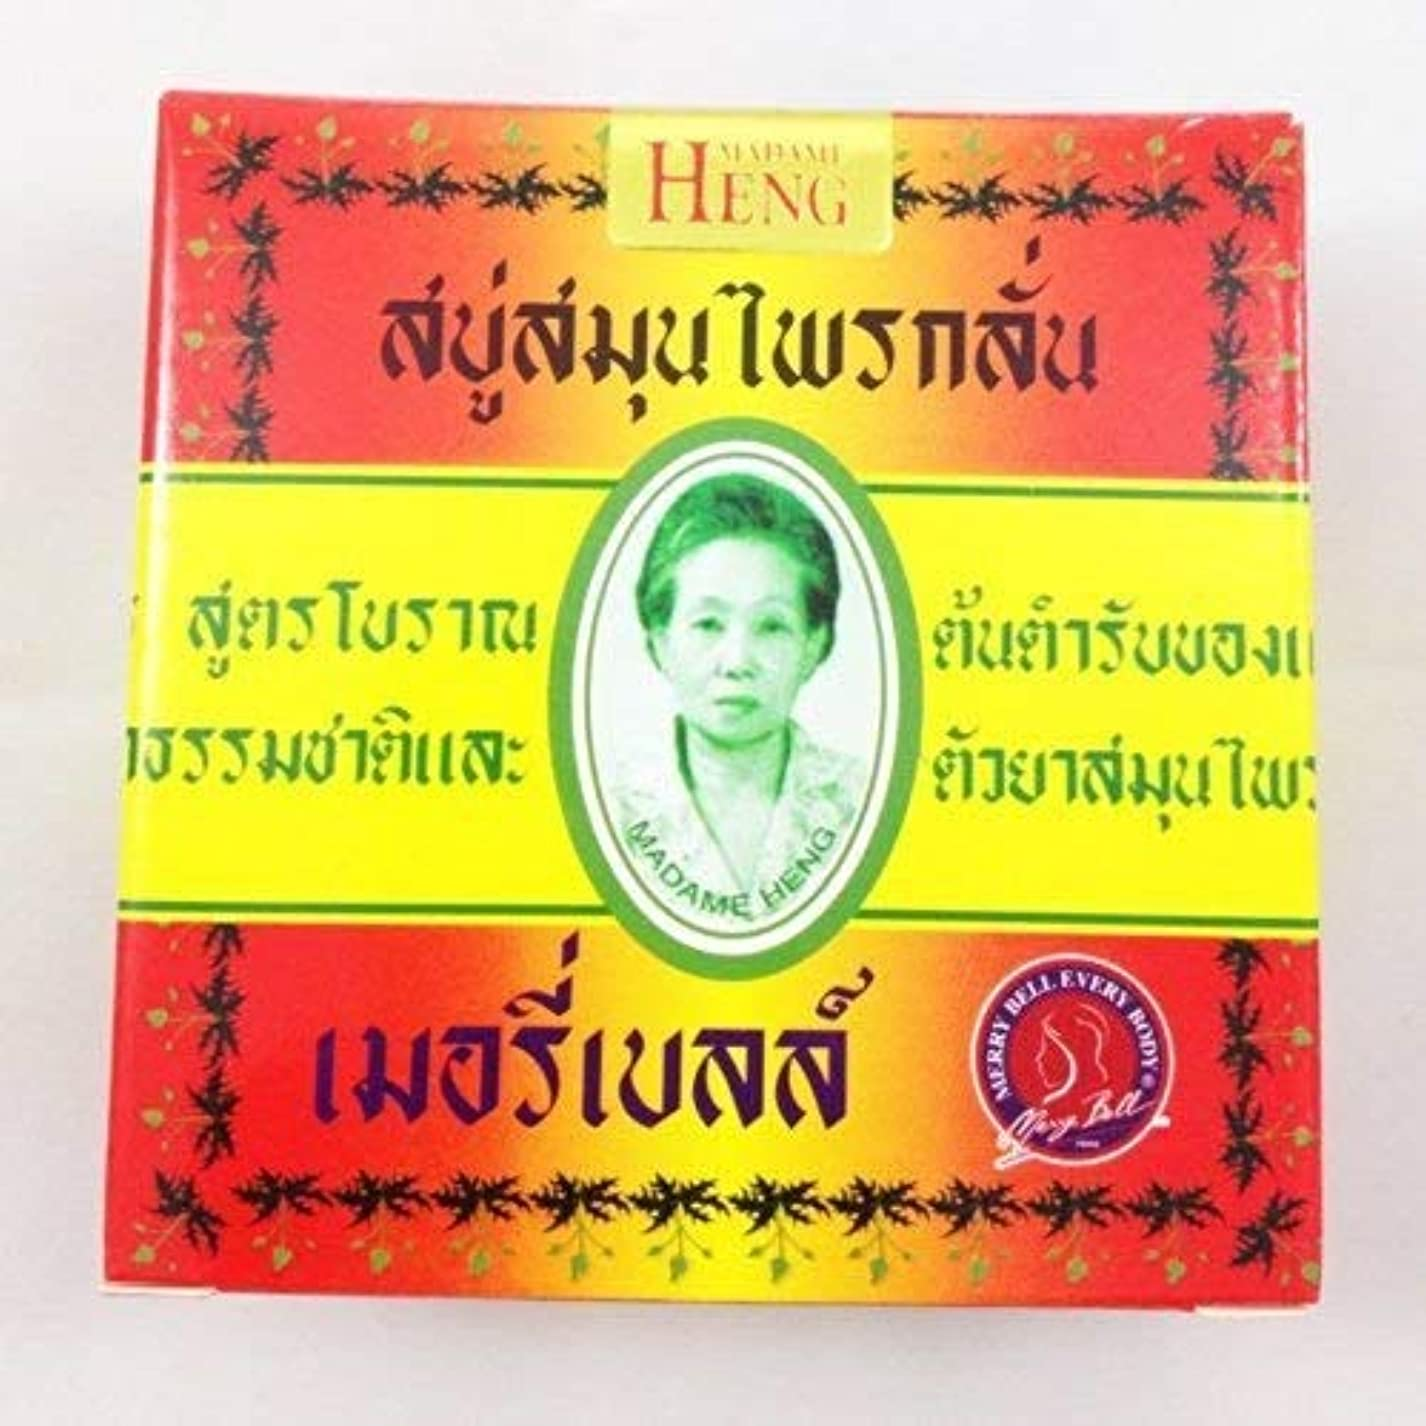 校長周波数繁栄するMadame Heng Thai Original Natural Herbal Soap Bar Made in Thailand 160gx2pcs by Ni Yom Thai shop